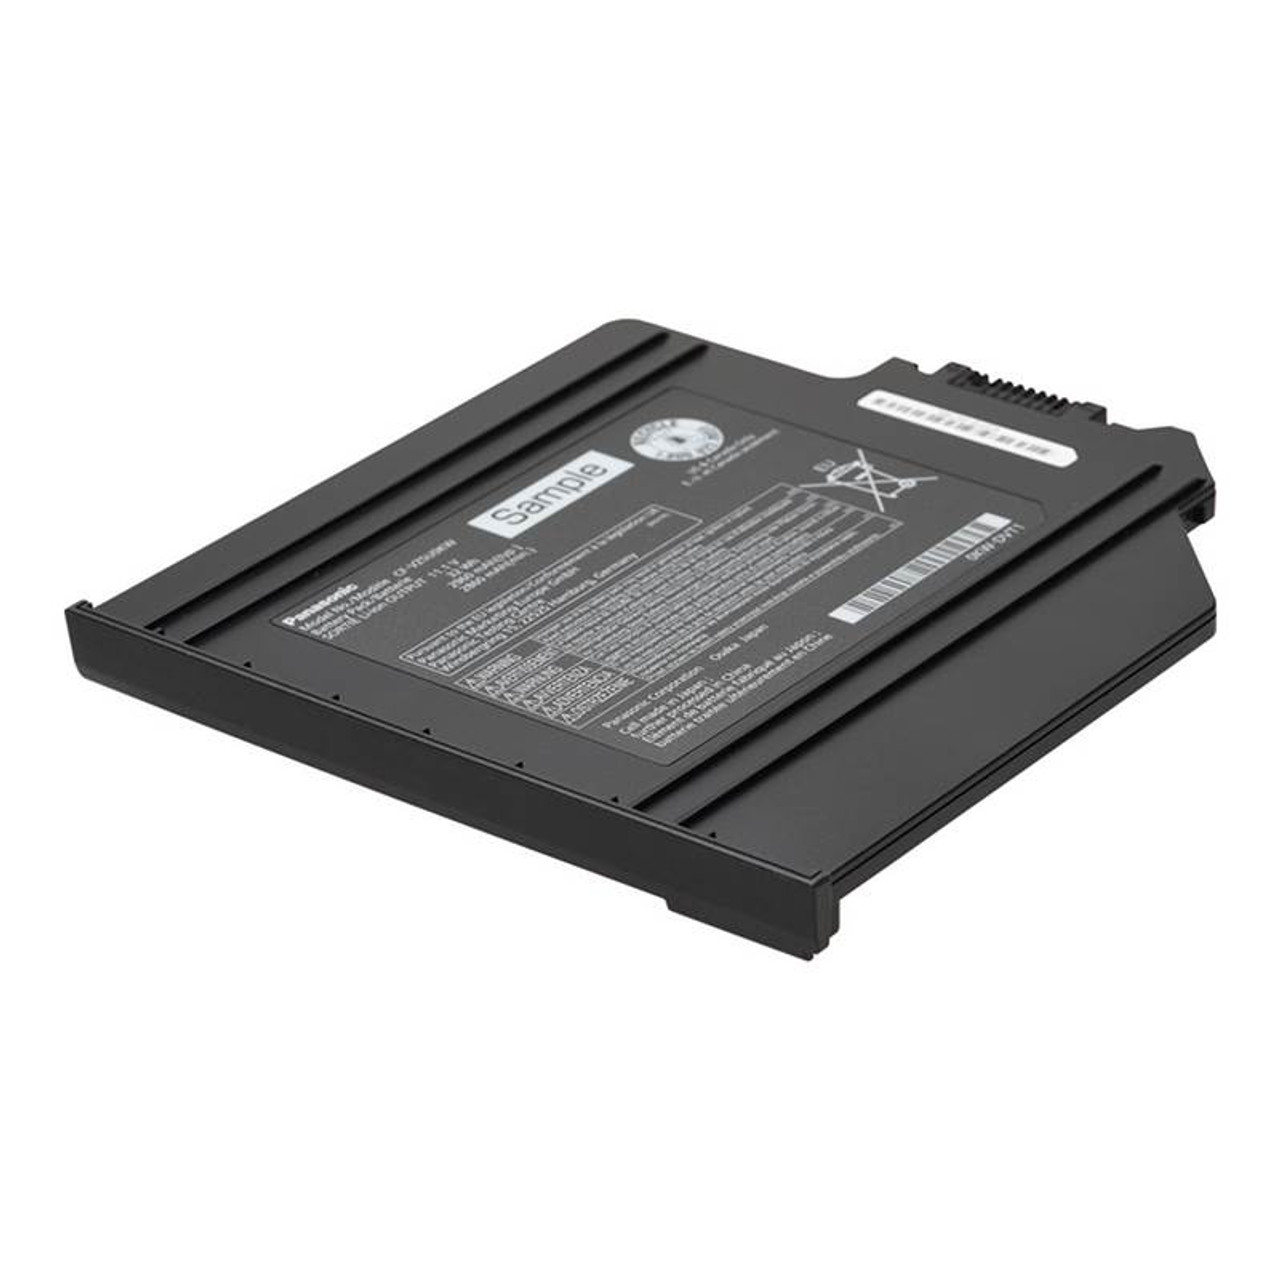 Image for Panasonic Optional Bay Battery for CF-54 CX Computer Superstore